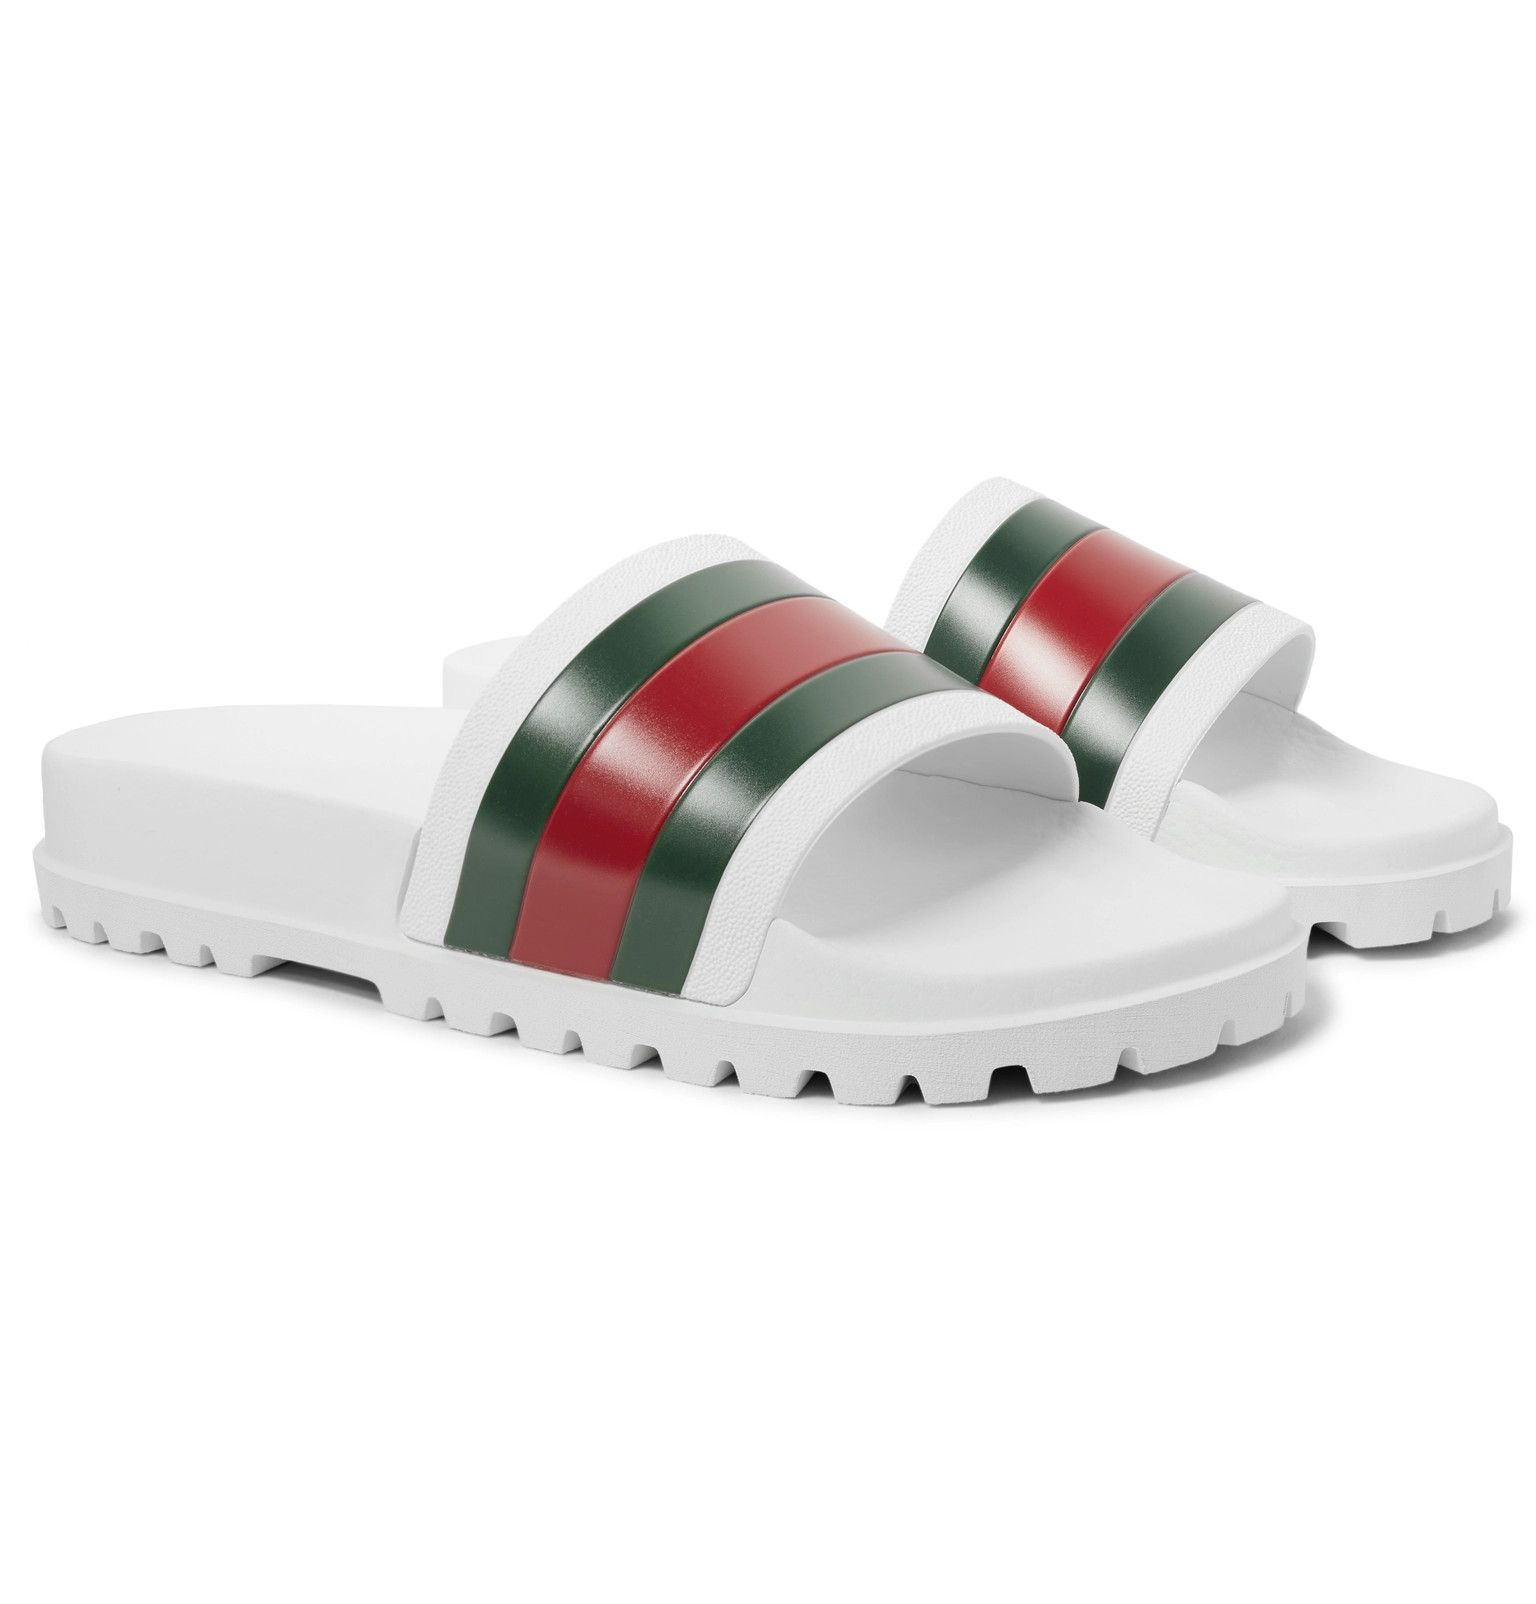 c3360f2f794 Gucci s Italian-made rubber slides boldly feature the brand s iconic  striping